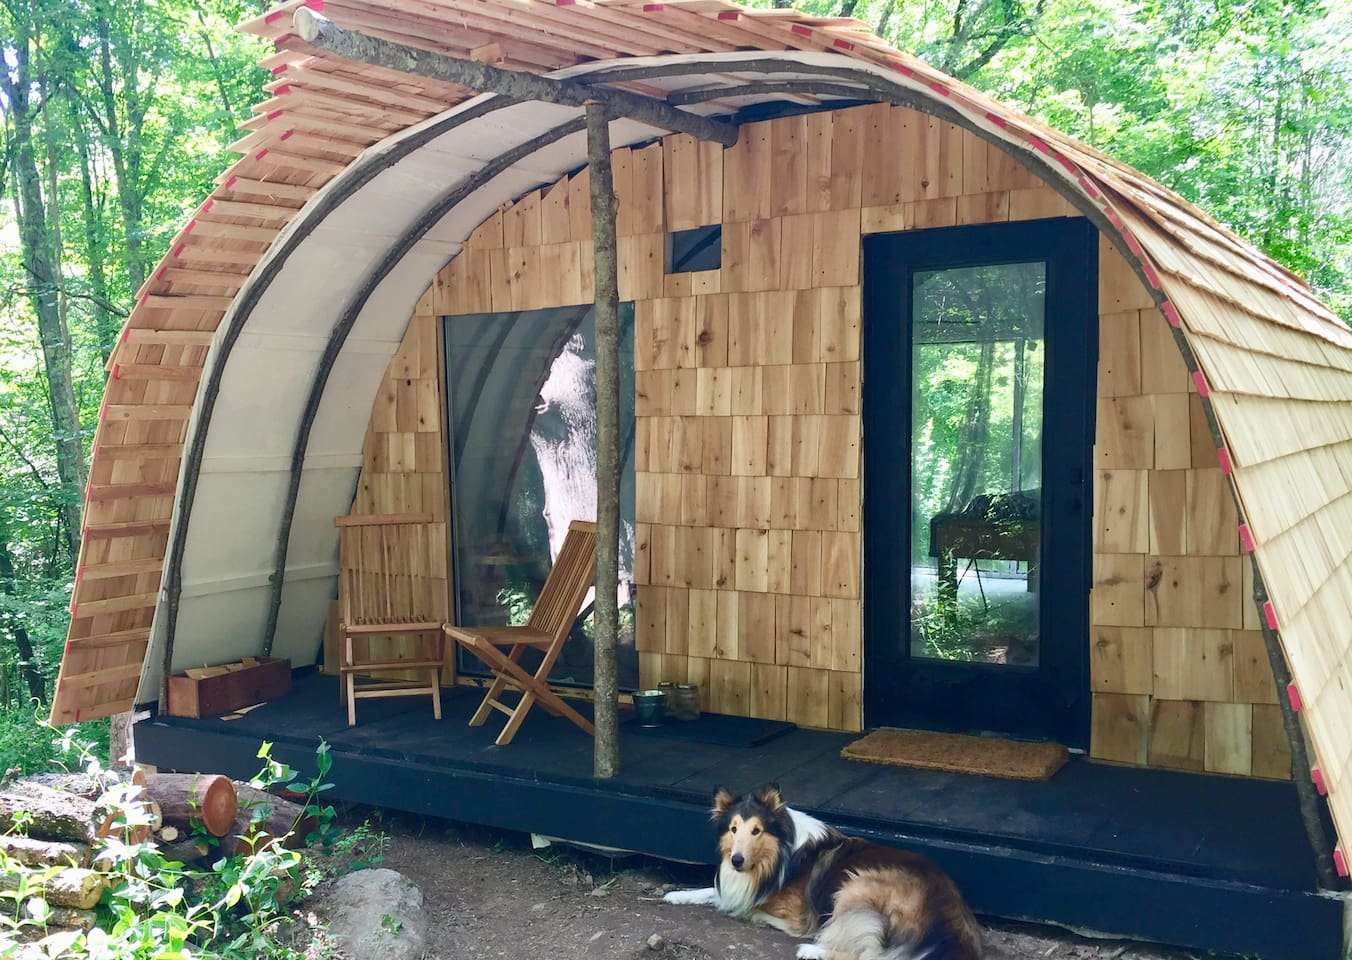 Cedar shingle fusion of a First Nation black birch wigwam and Scandinavian Longhouse surrounded by dappled forest and natures symphony.